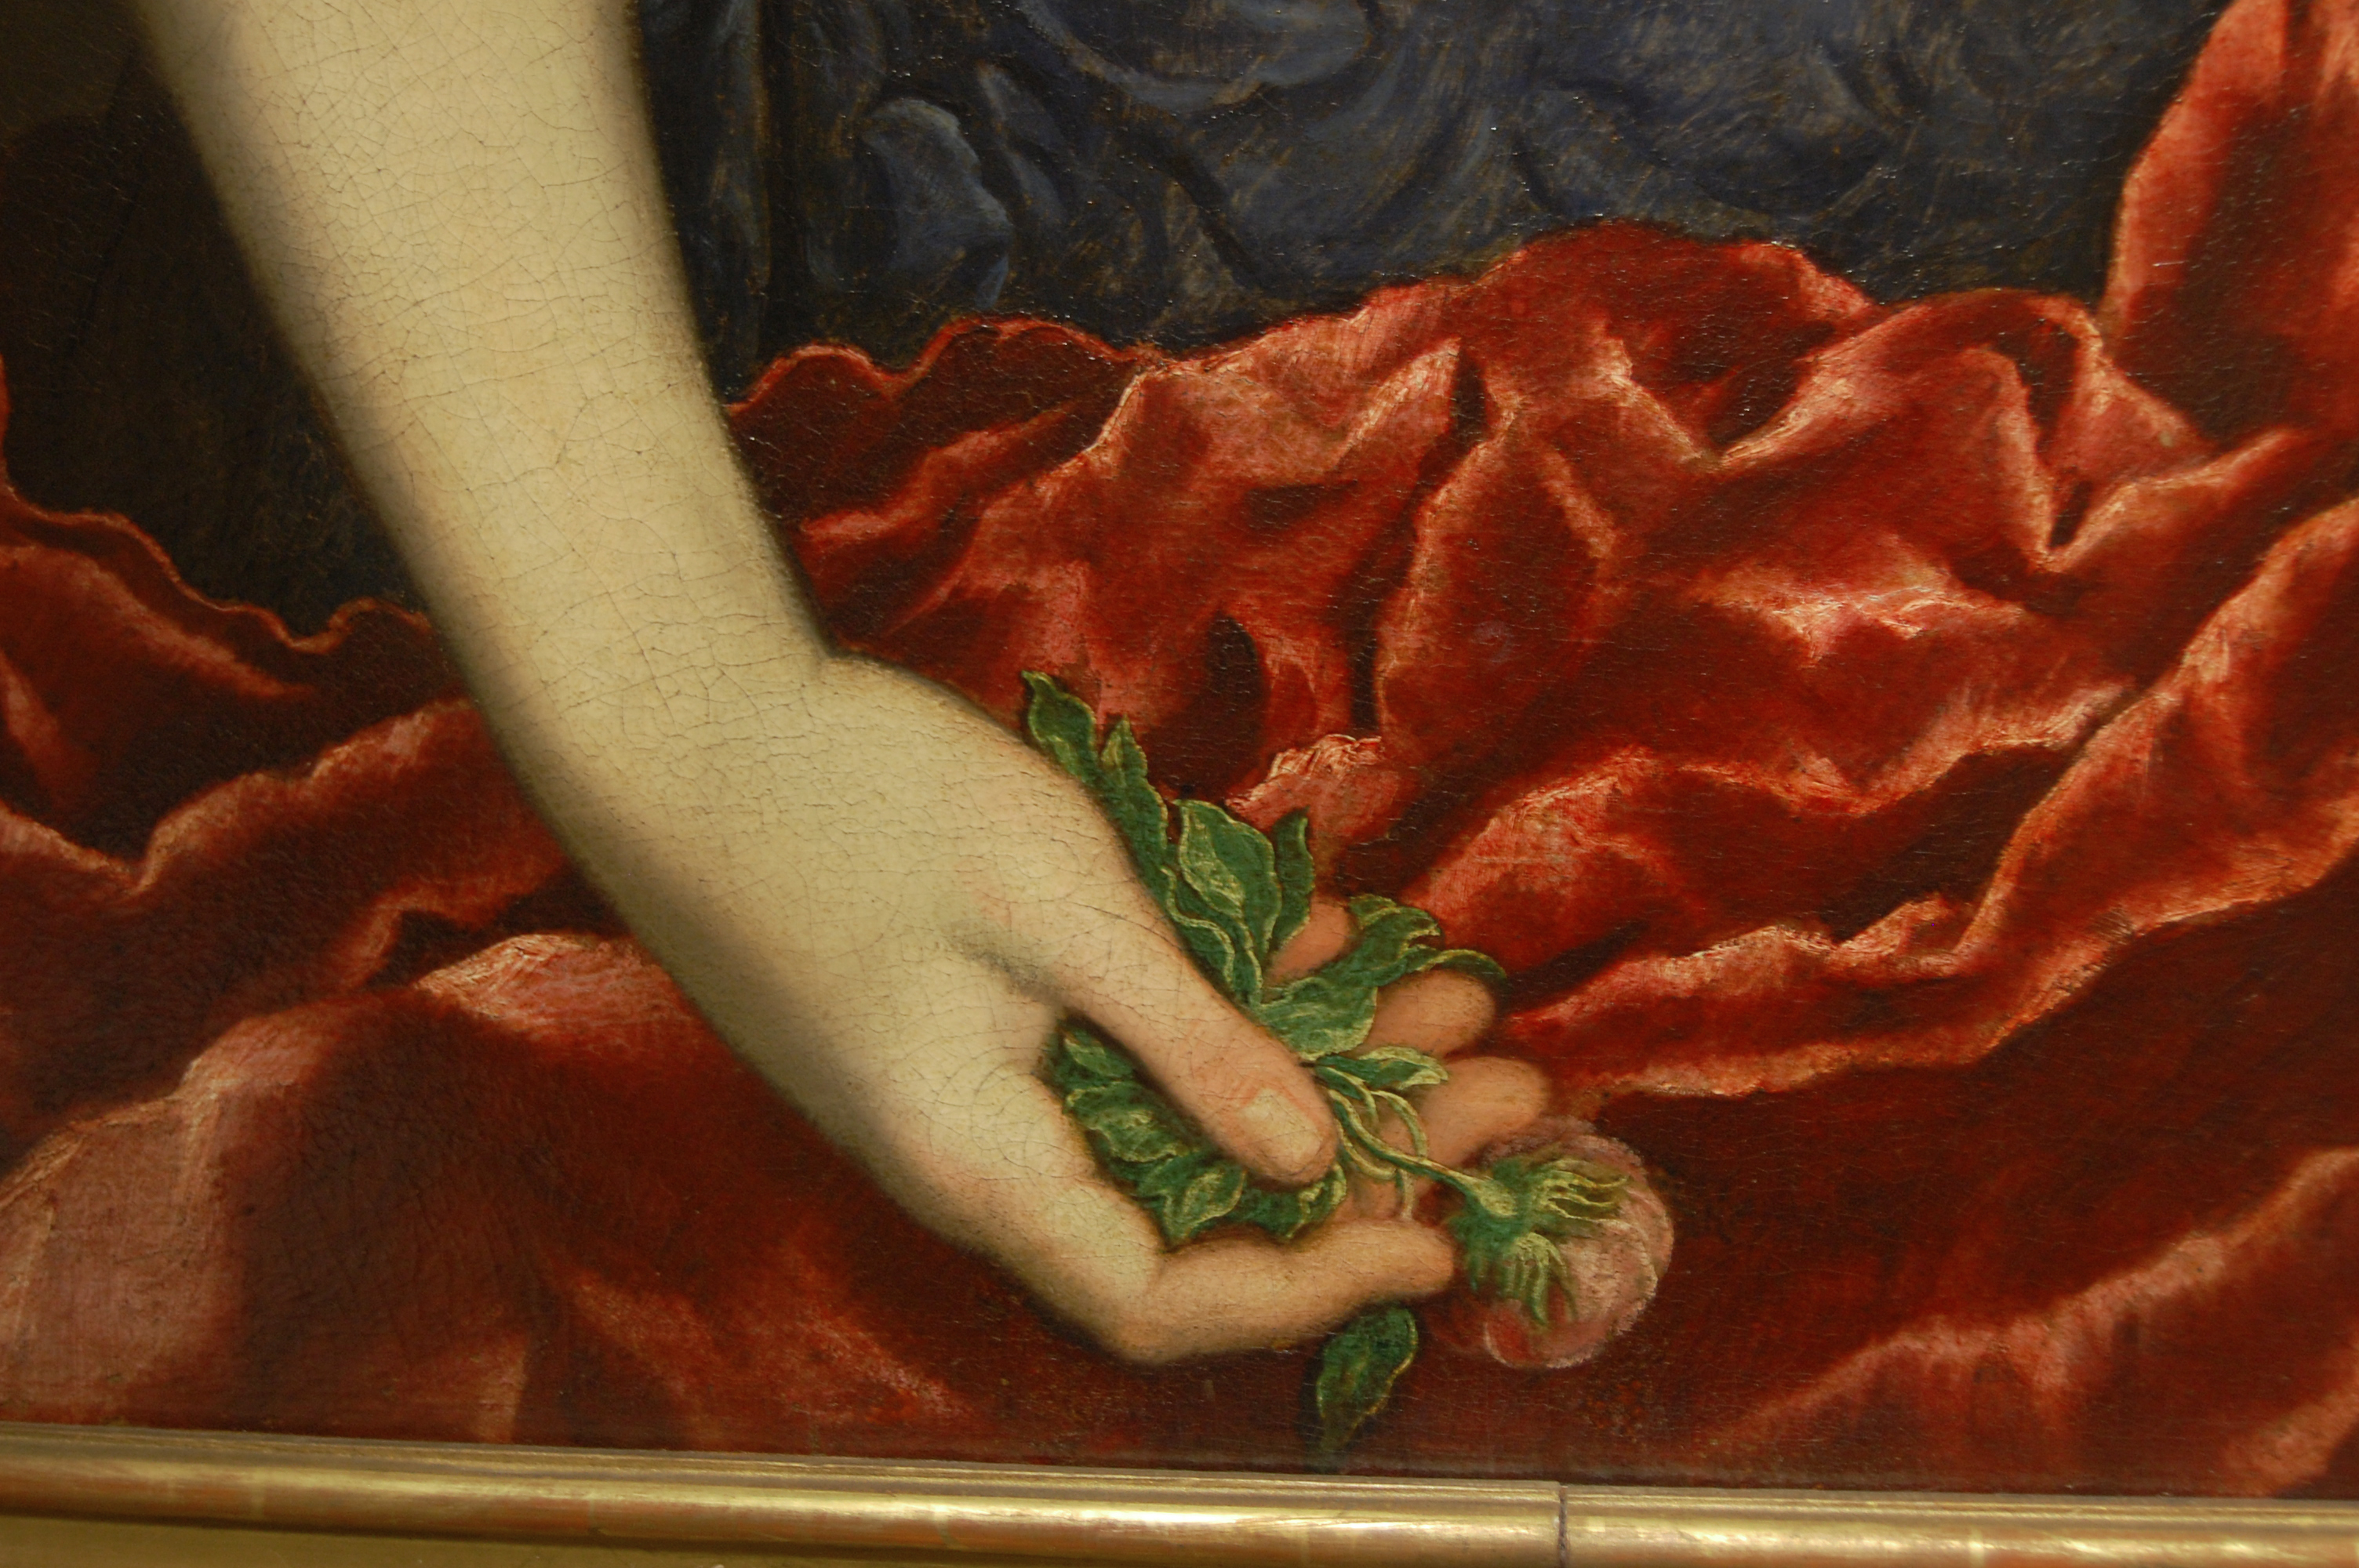 http://obviousmag.org/poetiquase/2015/03/08/Paris_Bordone_-_Portrait_of_a_woman_with_a_rose_%28detail_1%29.jpg